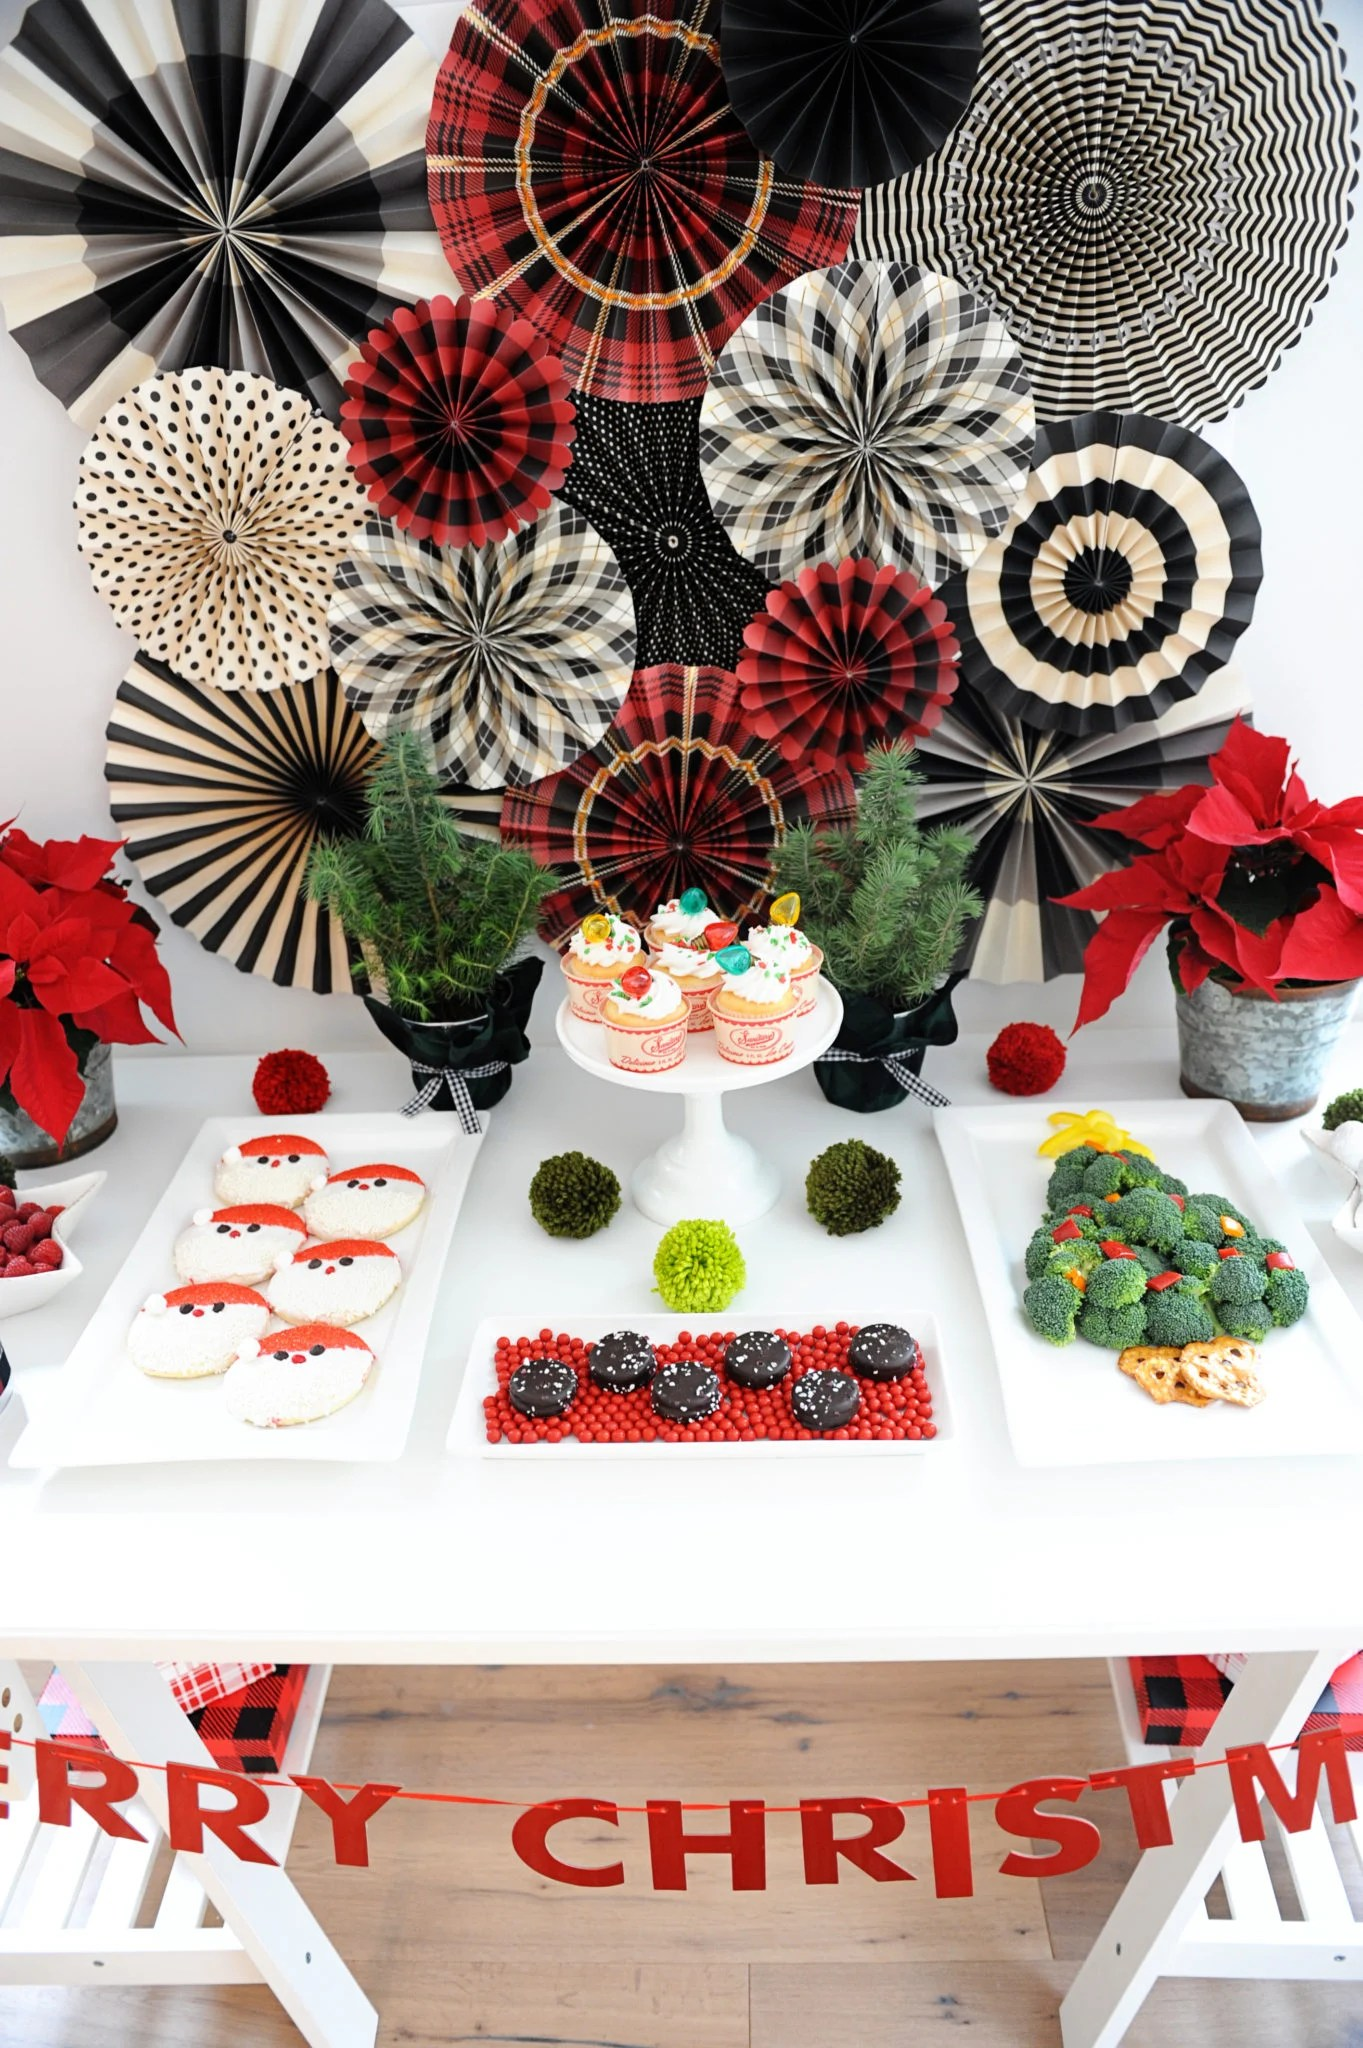 Ugly sweater party food ideas